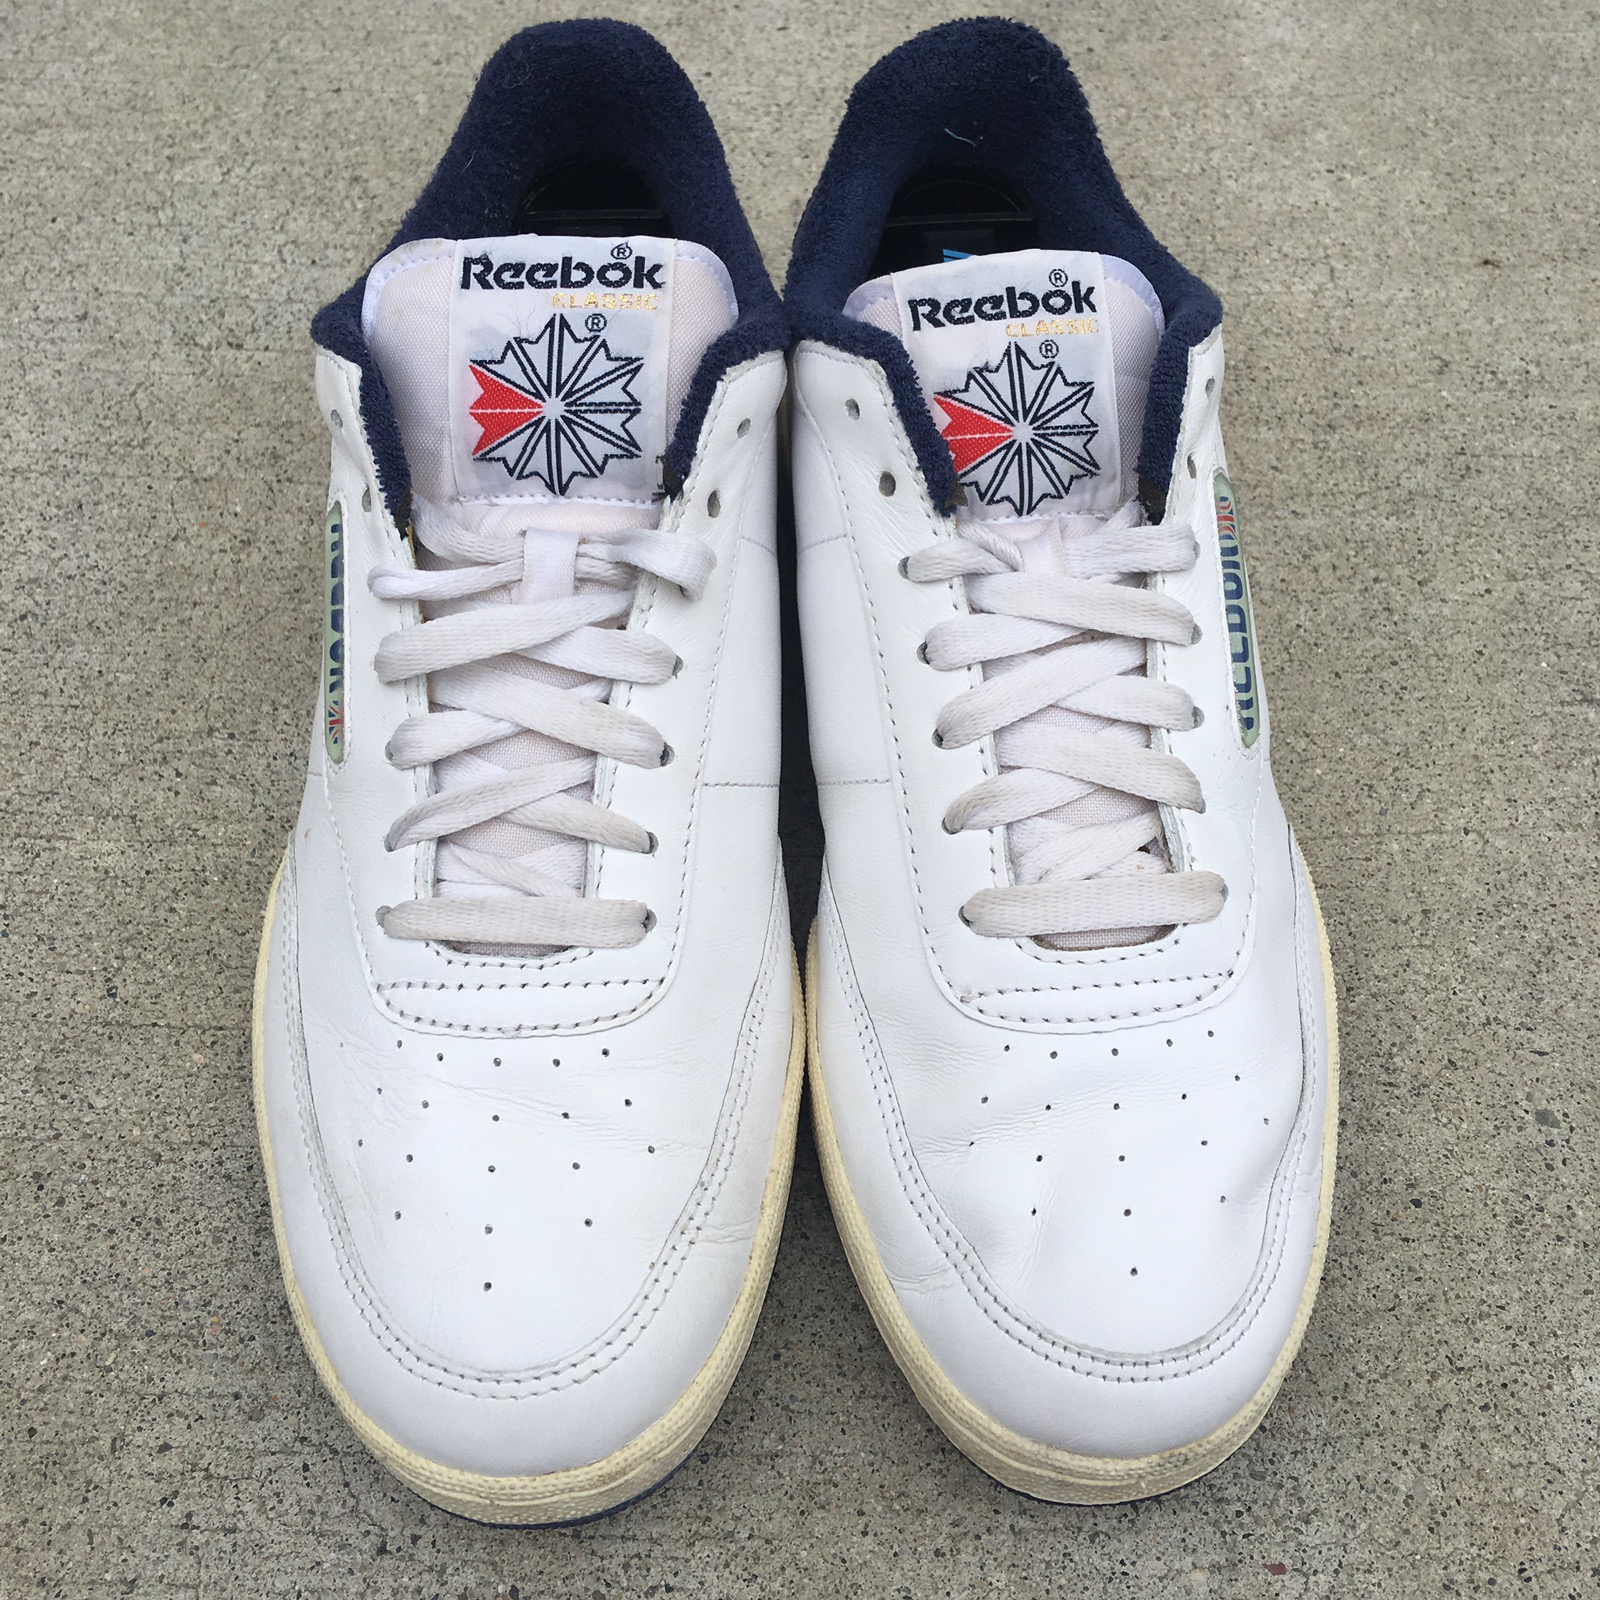 6d3f04f45a1a10 Reebok Vintage Reebok Classics aka Yeezy Powerphase Size 8.5 - Low-Top  Sneakers for Sale - Grailed